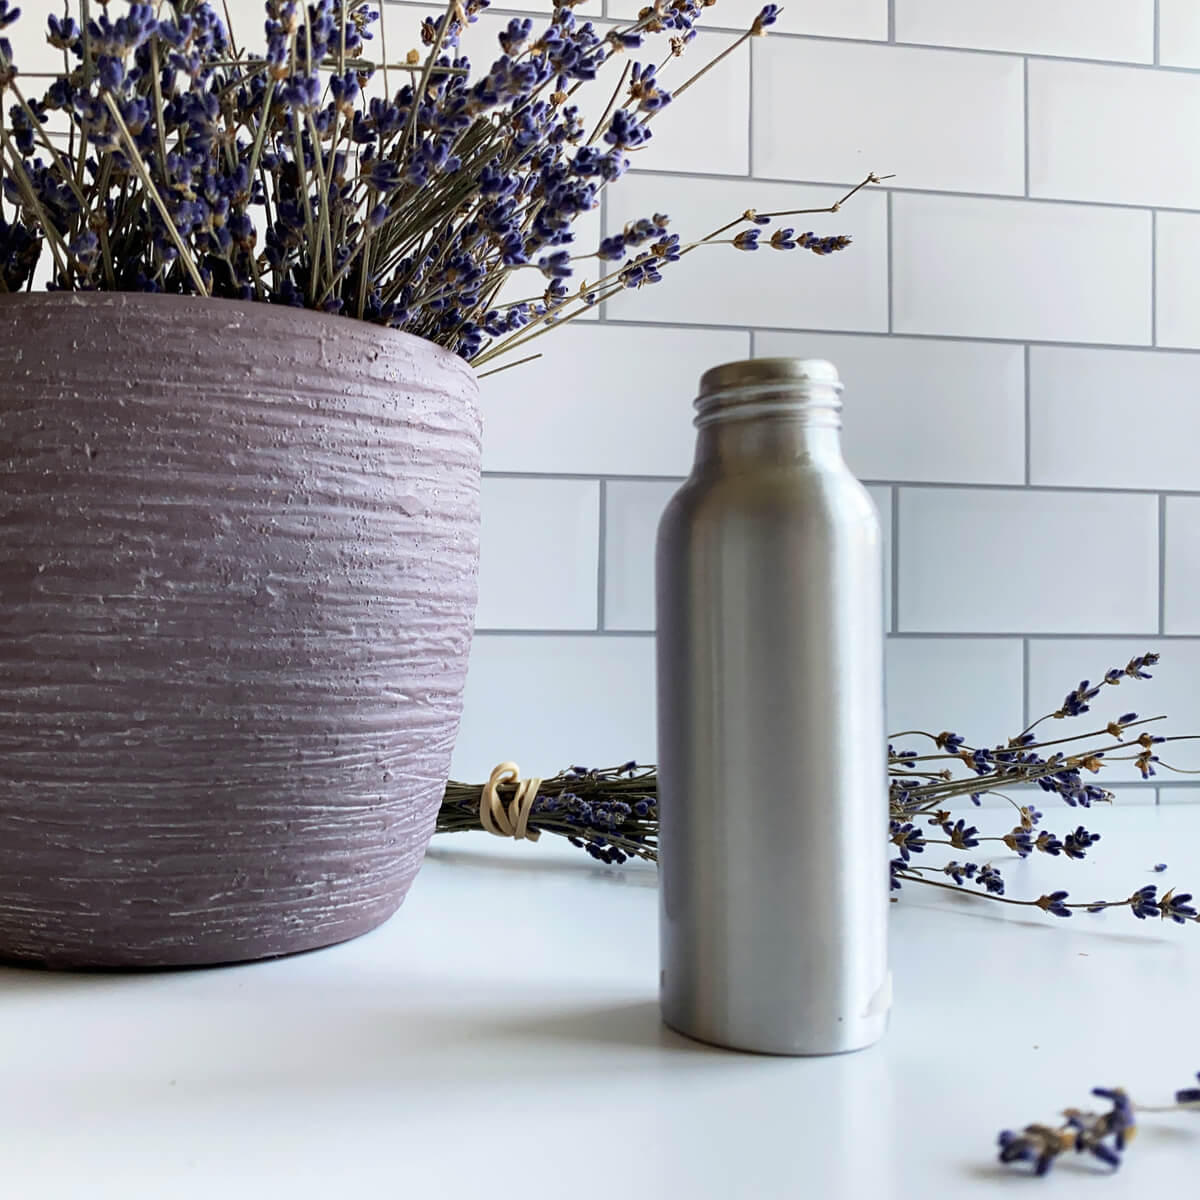 How to Make Lavender Oil: An Easy DIY Recipe